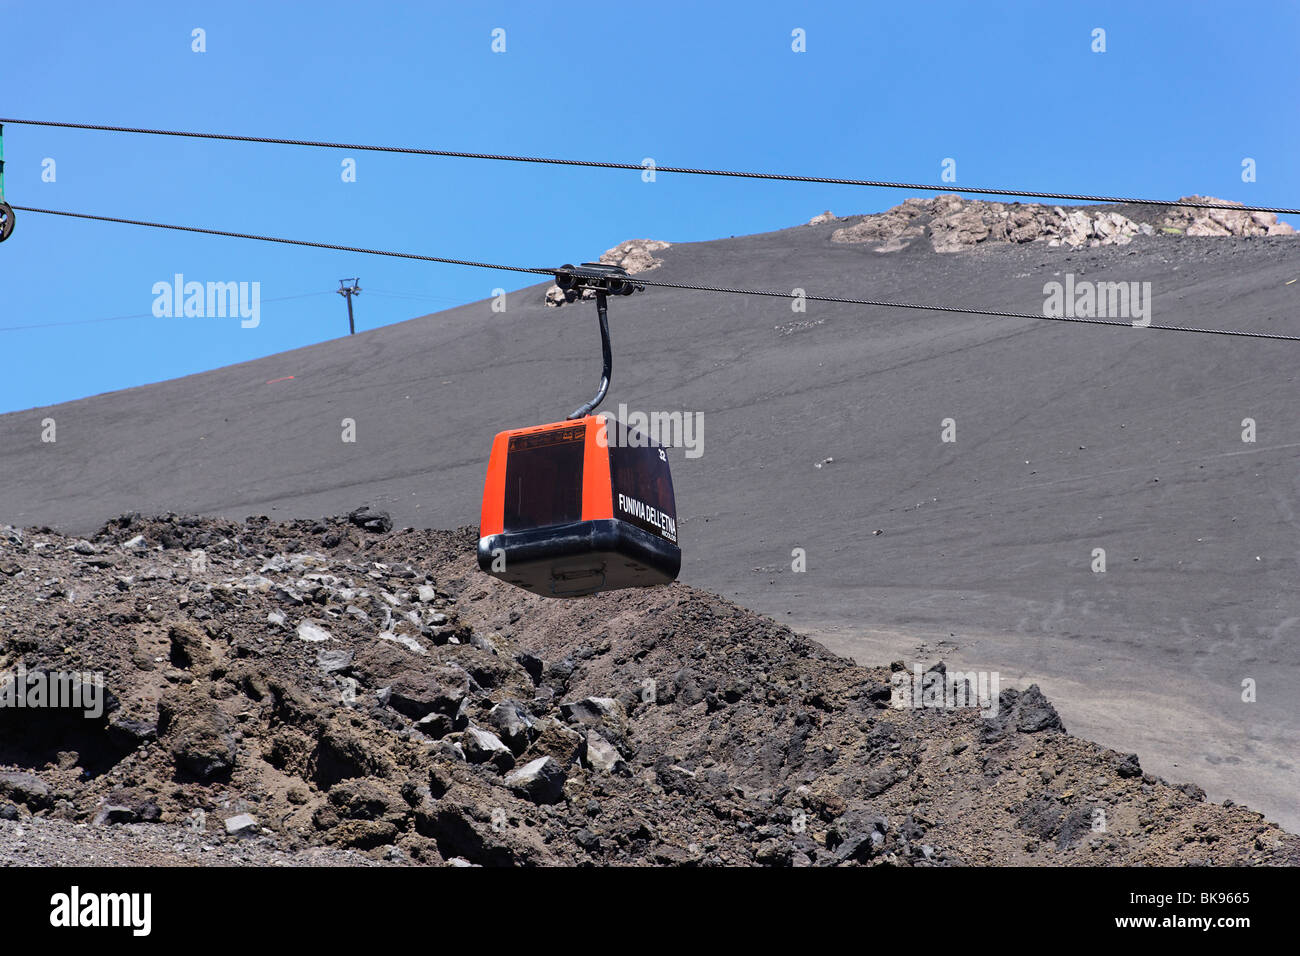 Cable Car To Mount Etna Sicily Italy Stock Photo Royalty Free